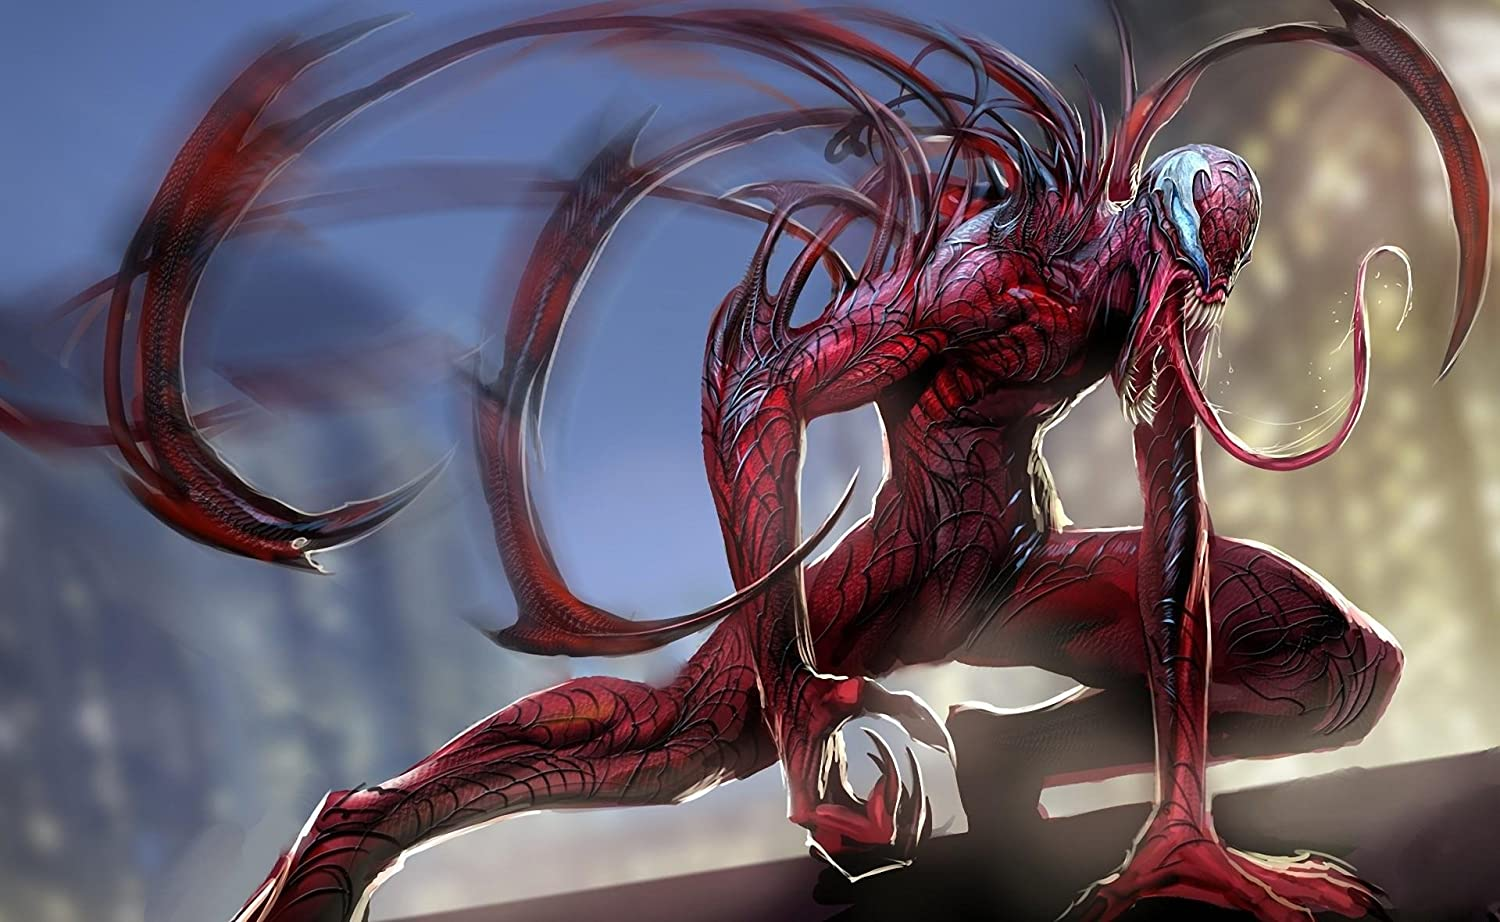 RFG REMOVE FROM GAME Carnage Spiderman Playmat 24 x 14 inch Mousepad for Yugioh Pokemon Magic The Gathering